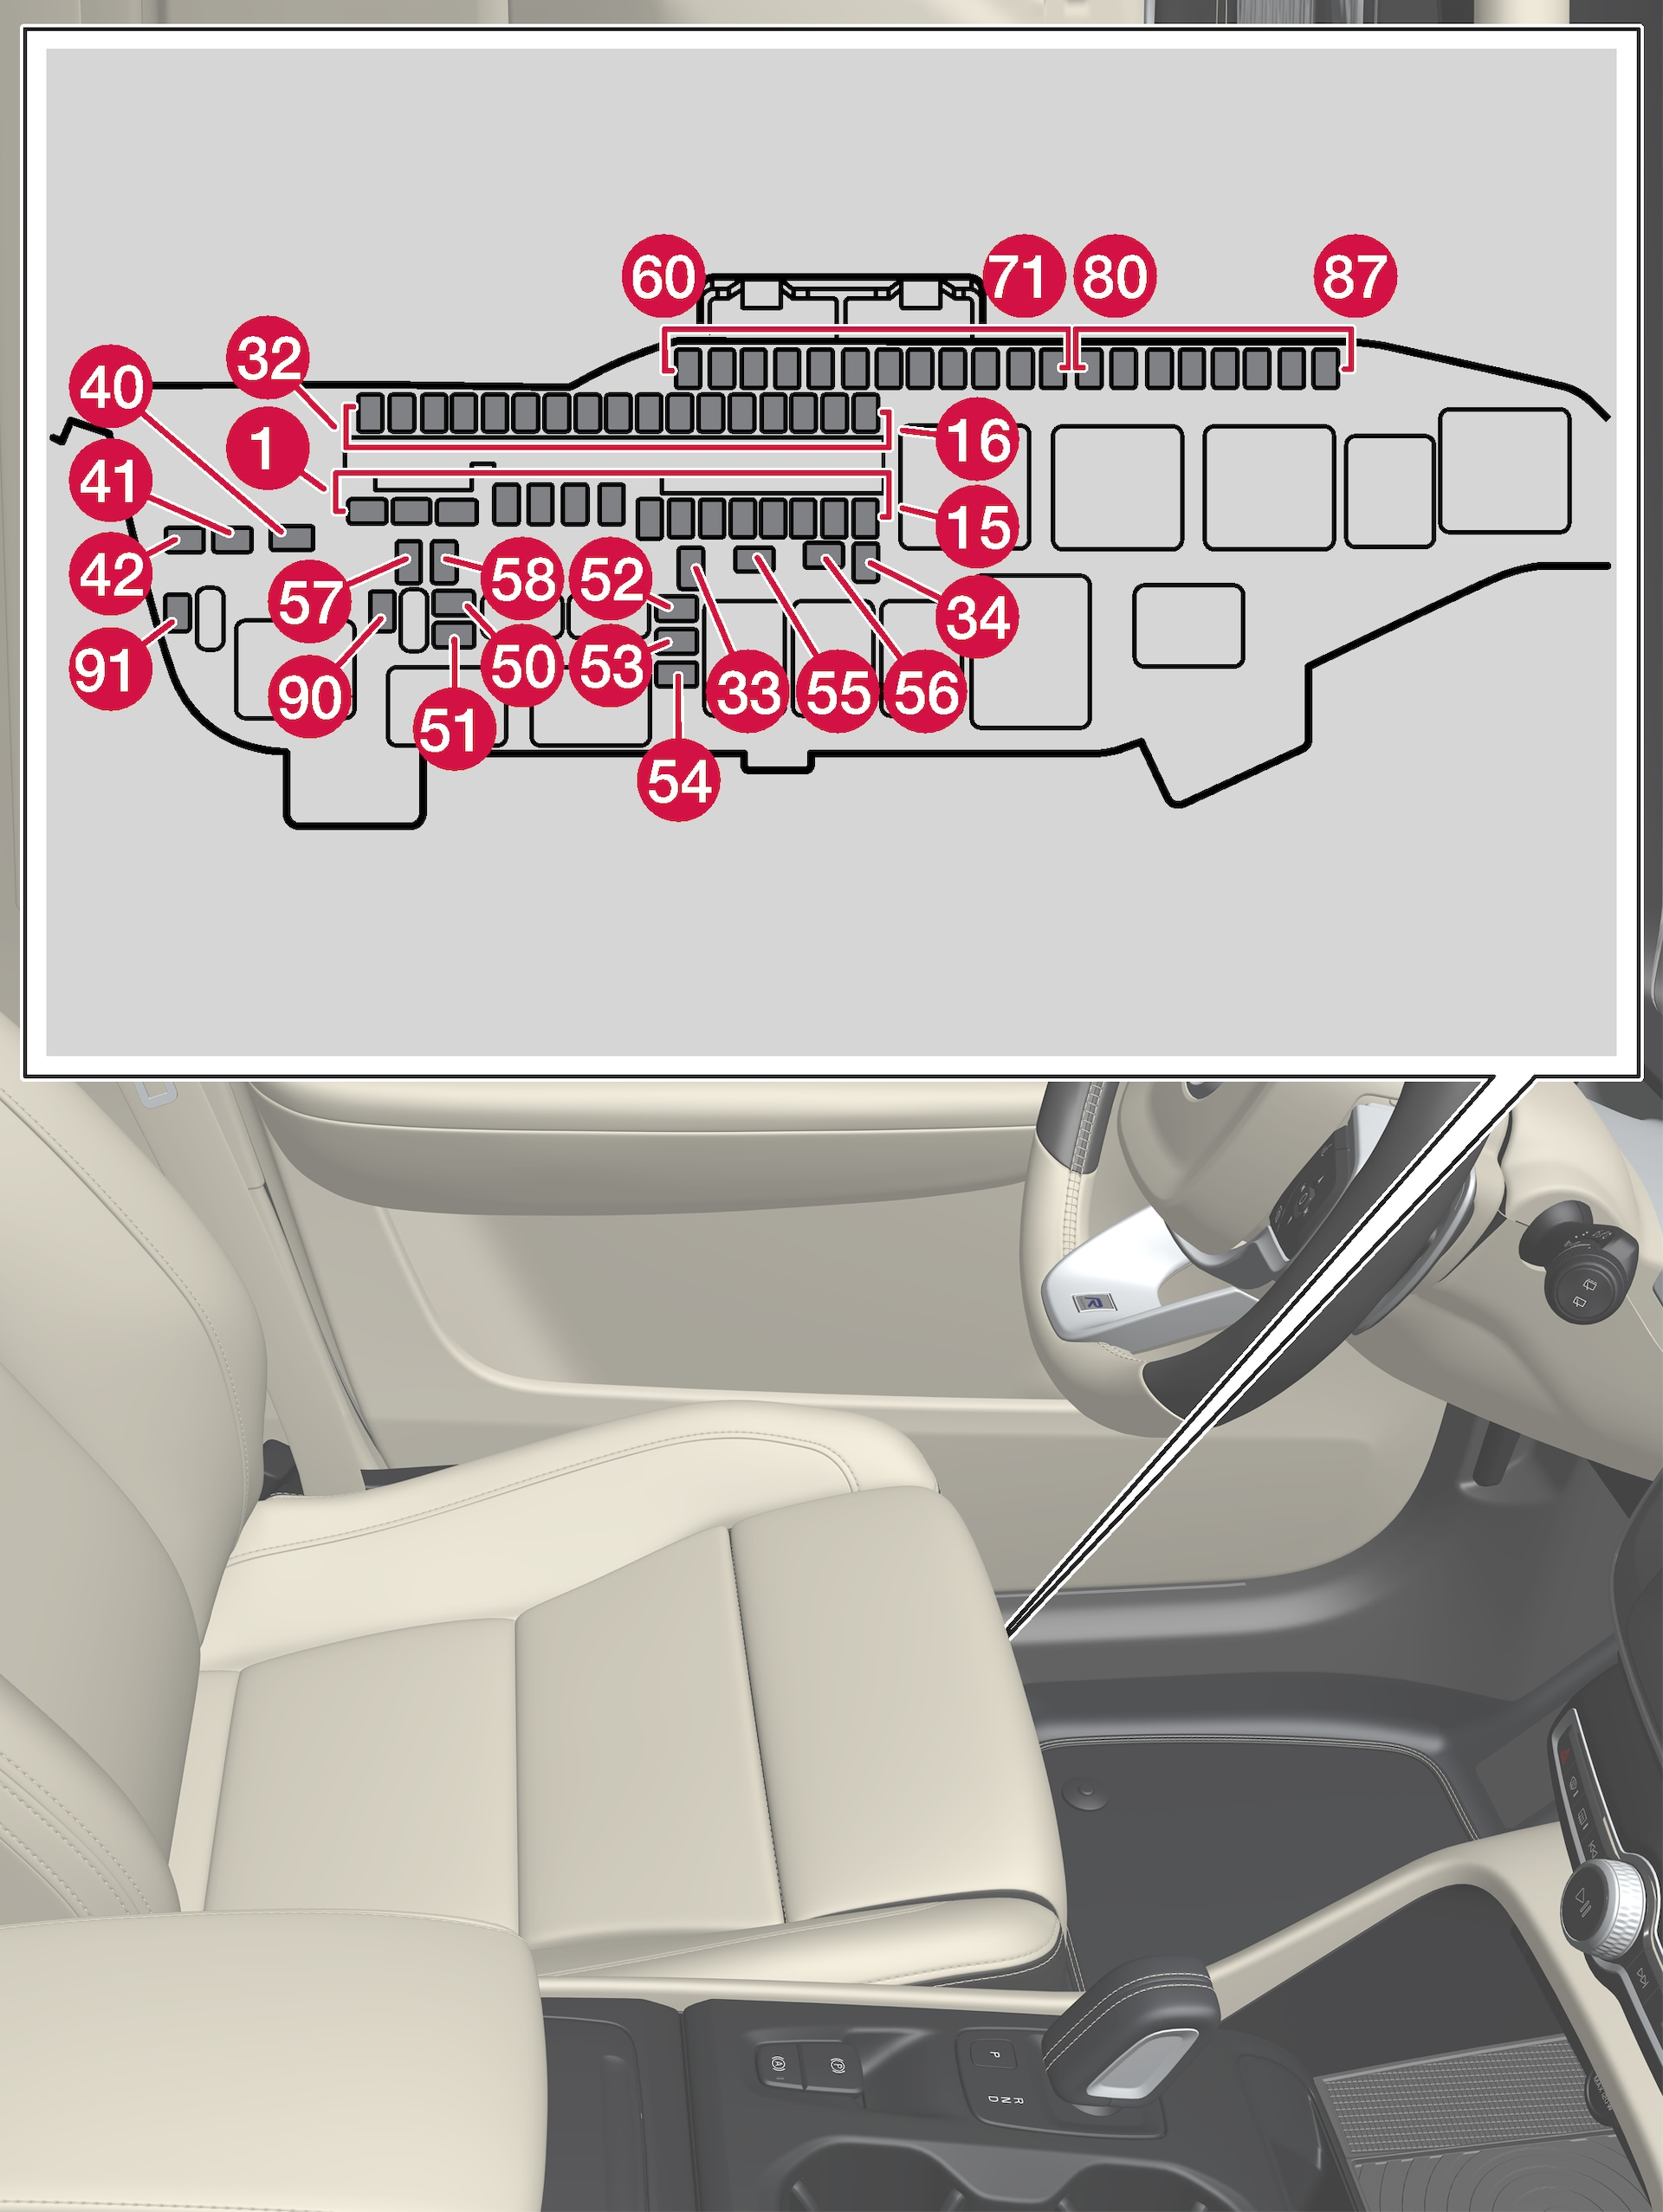 [DIAGRAM_3ER]  Fuses under the left-hand front seat | Storage and passenger compartment |  Loading, storage and passenger compartment | XC40 2019 Early | Volvo Support | Volvo Xc60 Interior Fuse Box |  | Volvo Cars